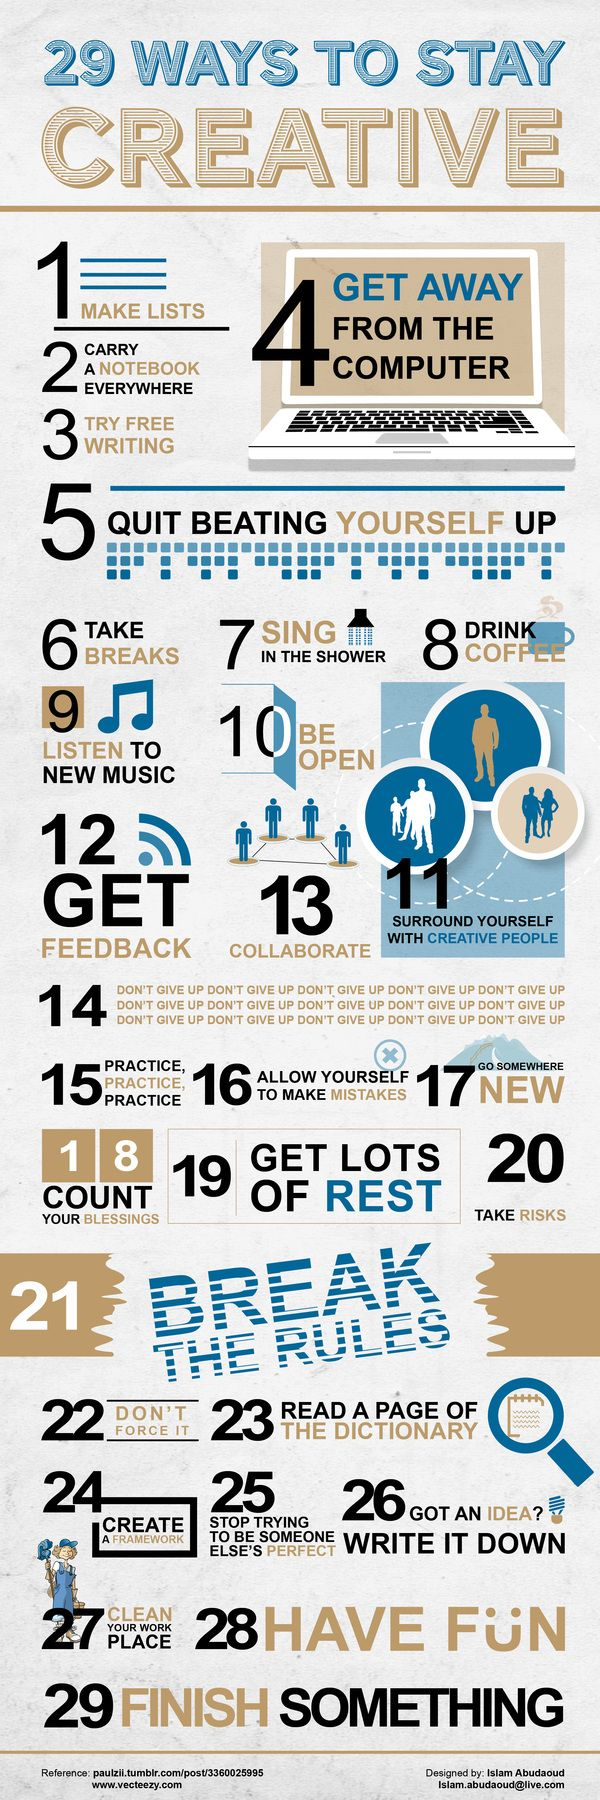 29 Ways to Stay Creative Infographic by Islam Abudaoud, via Behance #creativity